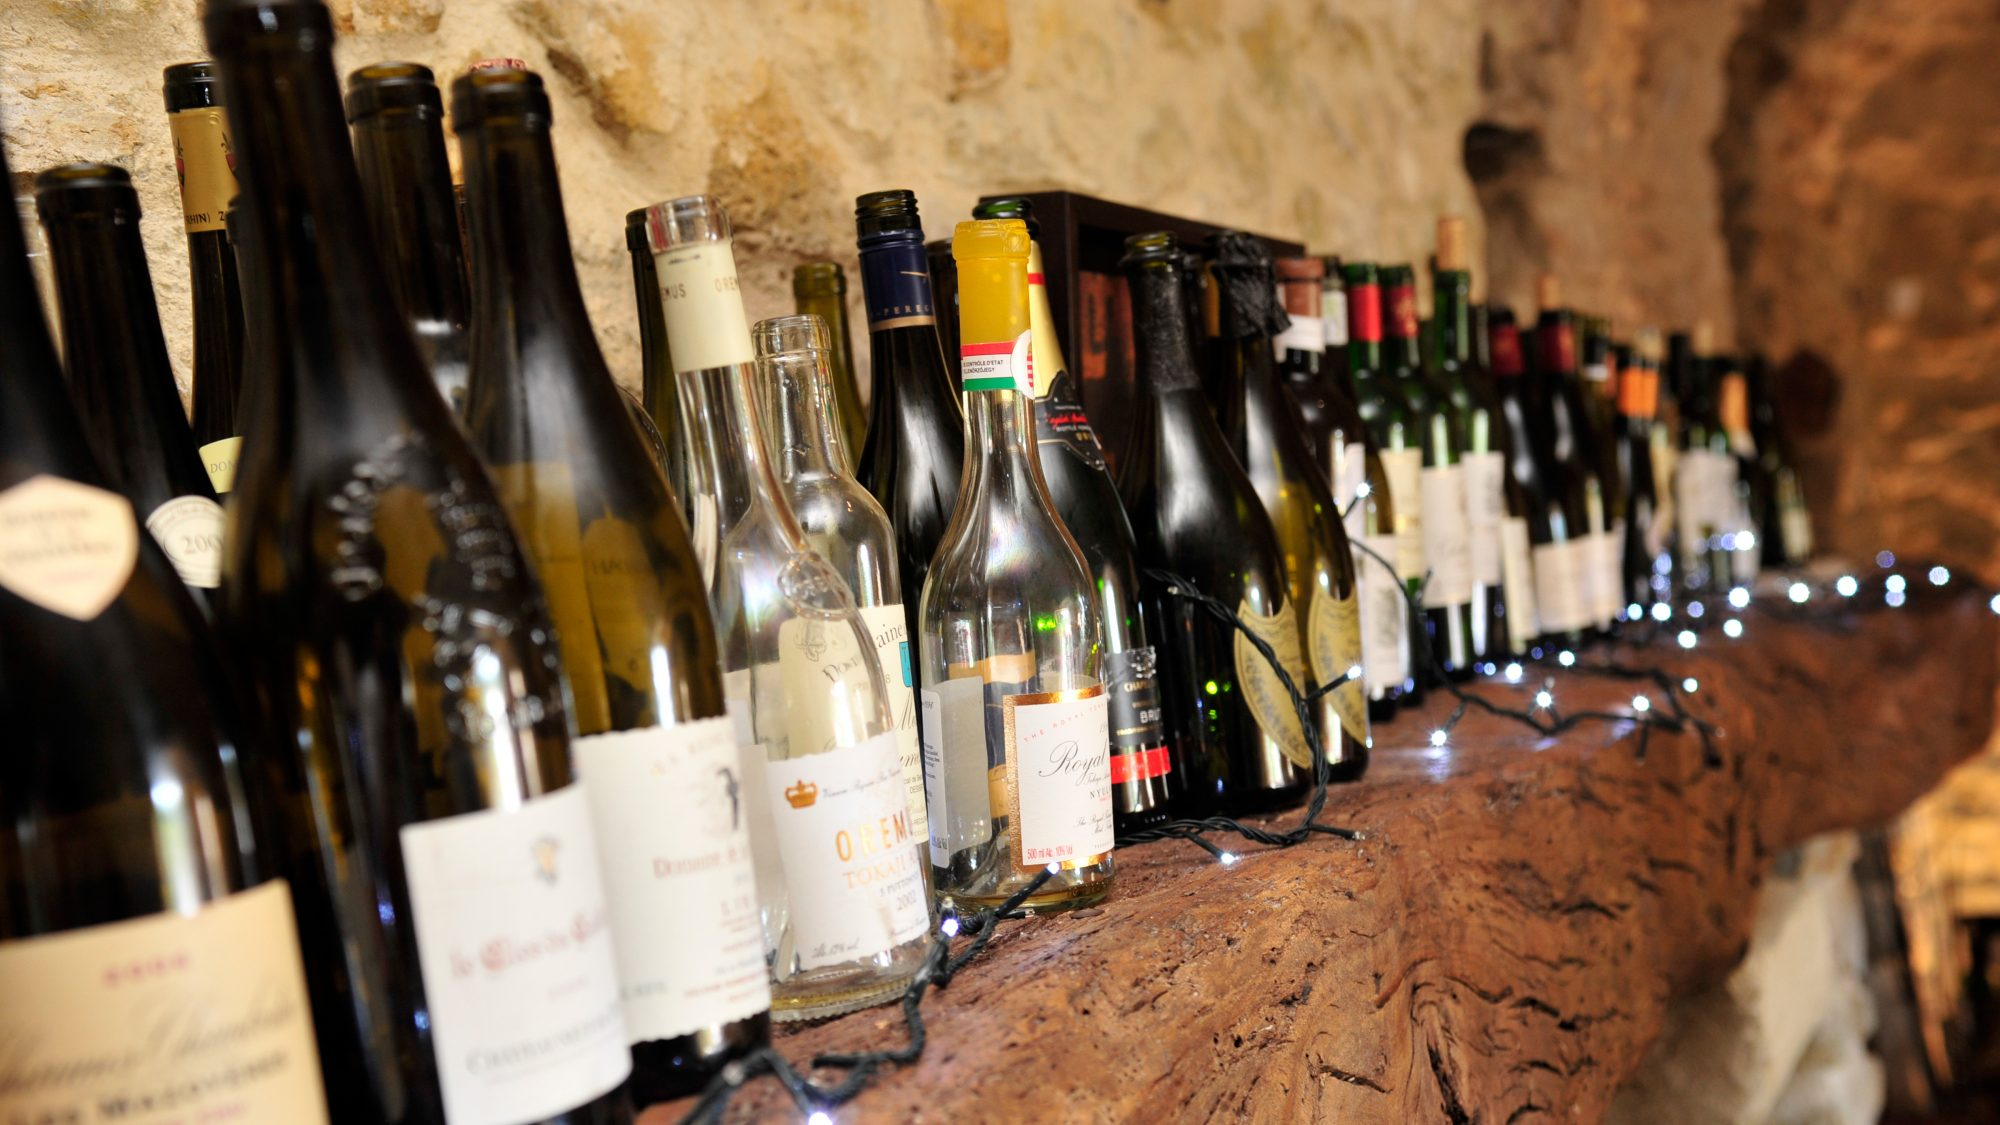 Enroll in Wine Boot Camp in the South of France